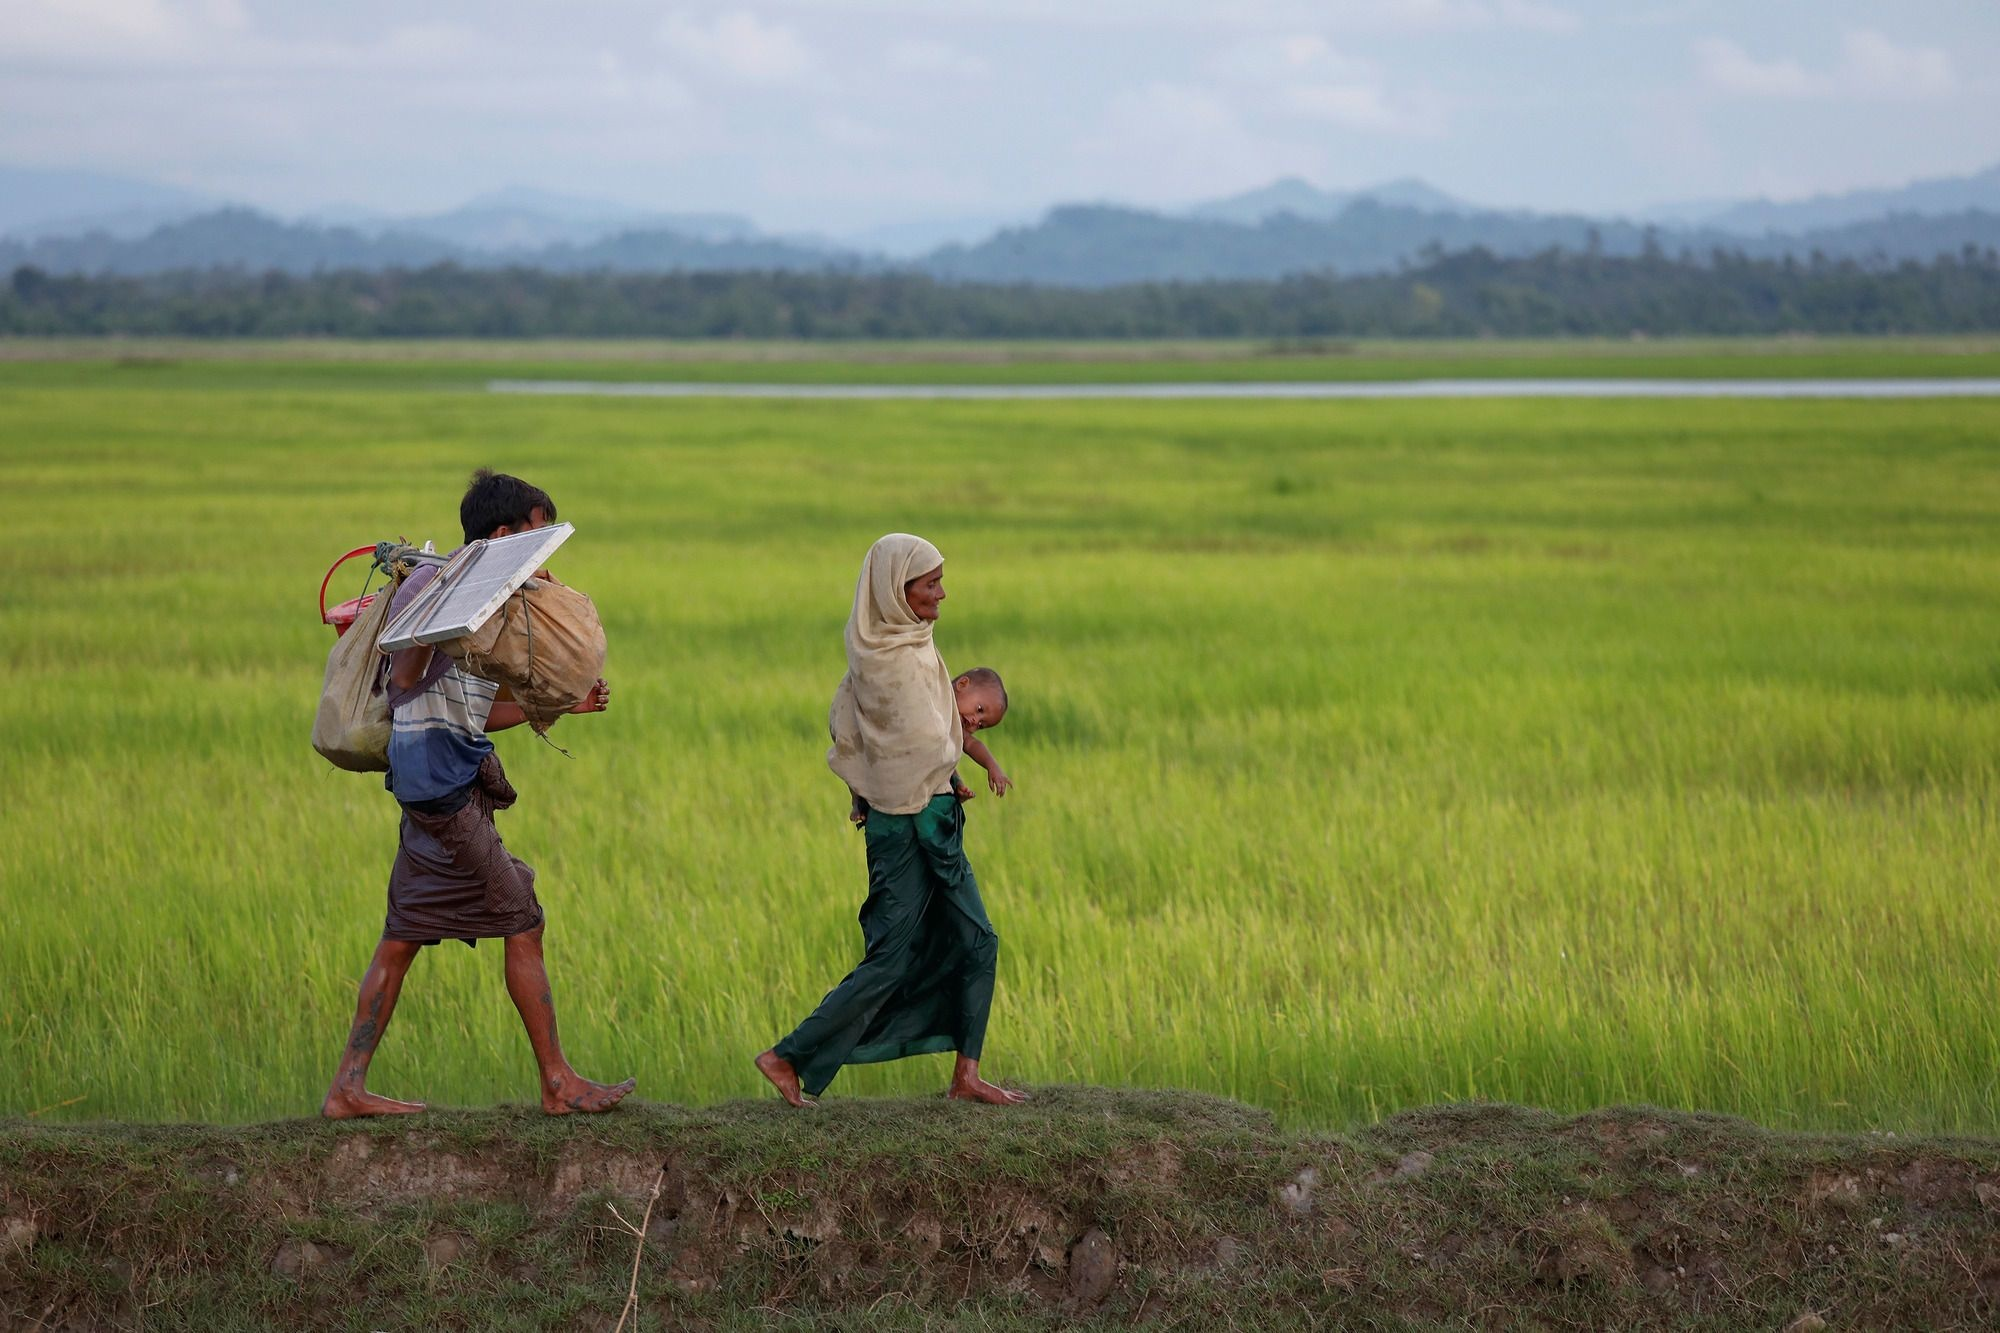 Rohingya refugees who fled from Myanmar make their way through the rice field after crossing the border in Palang Khali, Bangladesh October 9, 2017. REUTERS/Damir Sagolj - RC13A1FAEBD0, REUTERS